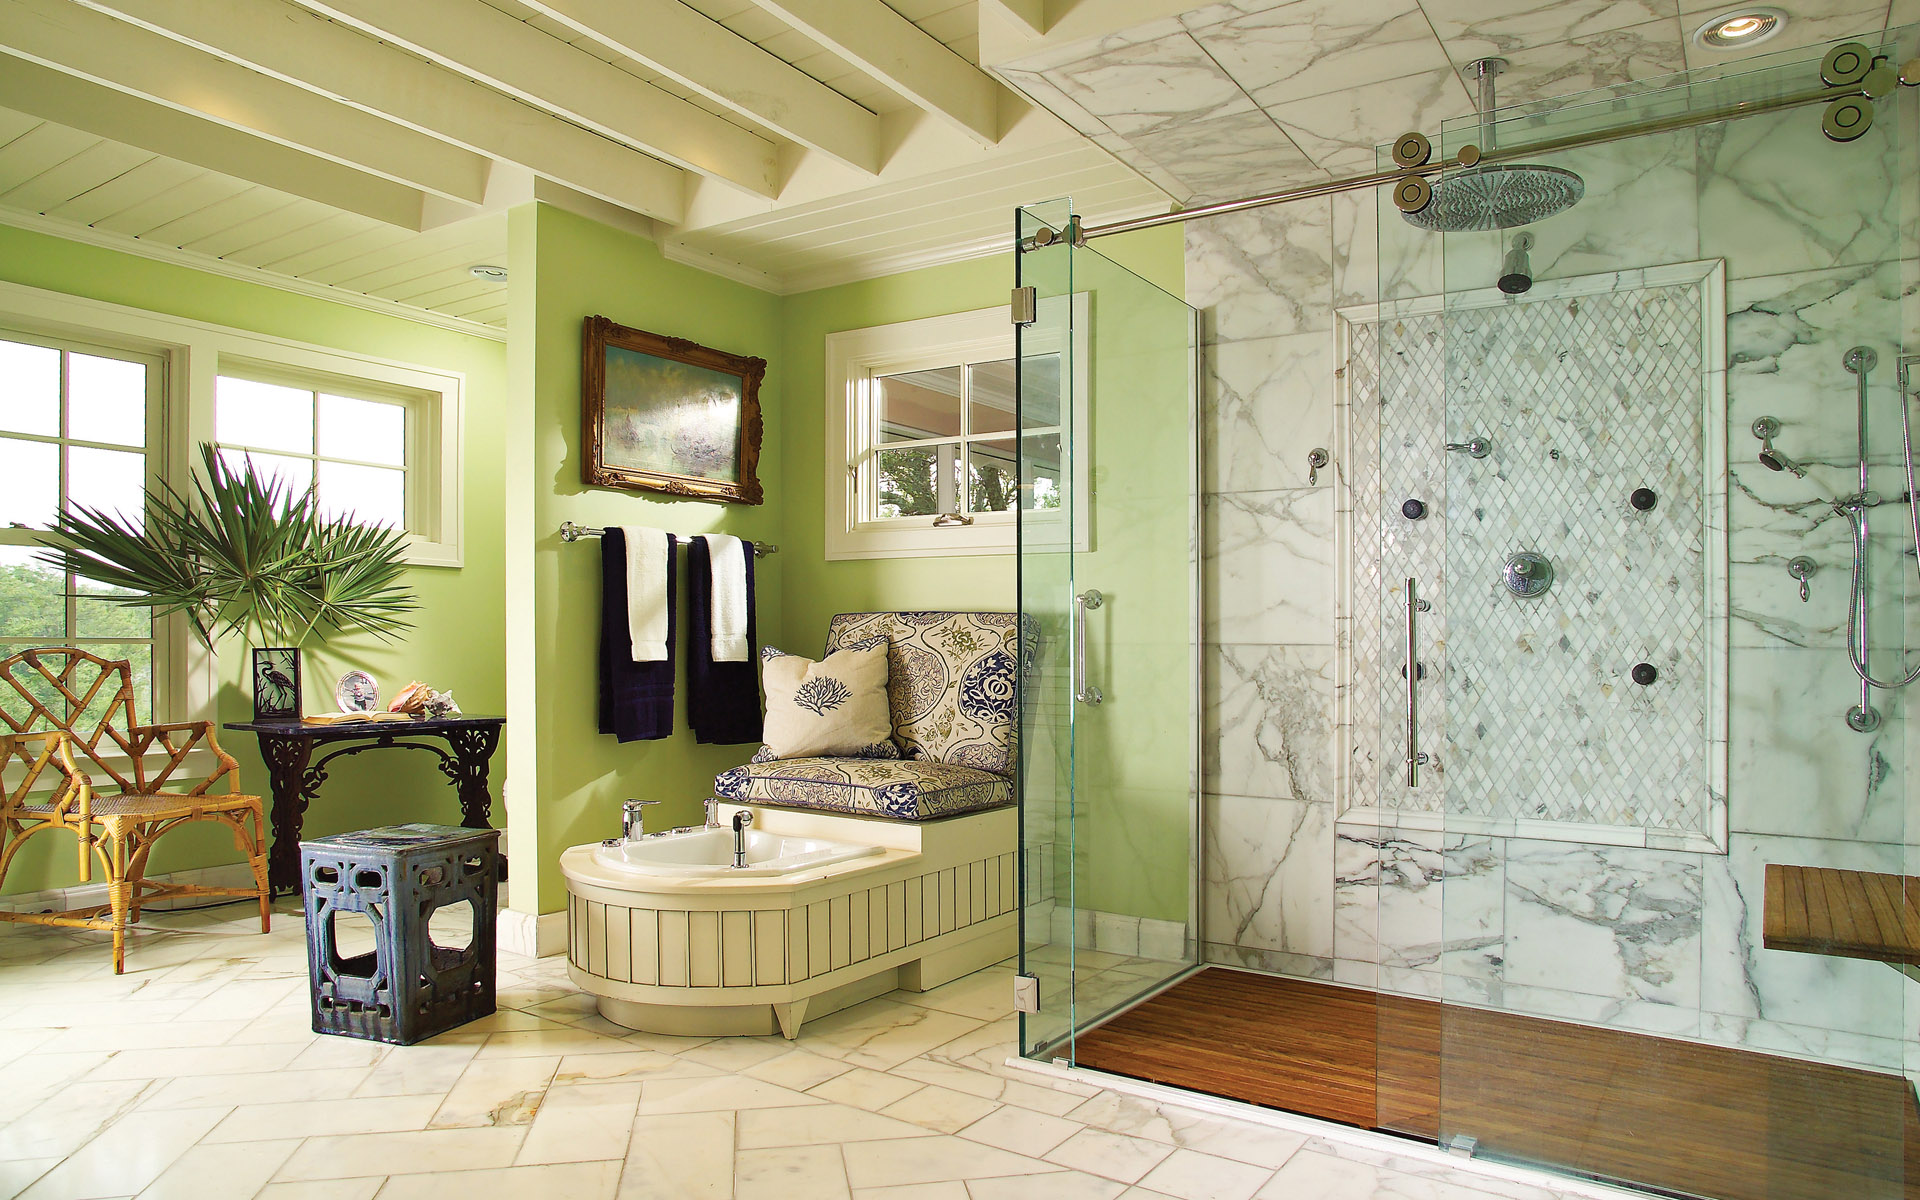 6 classic bathroom design to think about ewdinteriors 6 classic bathroom design to think about